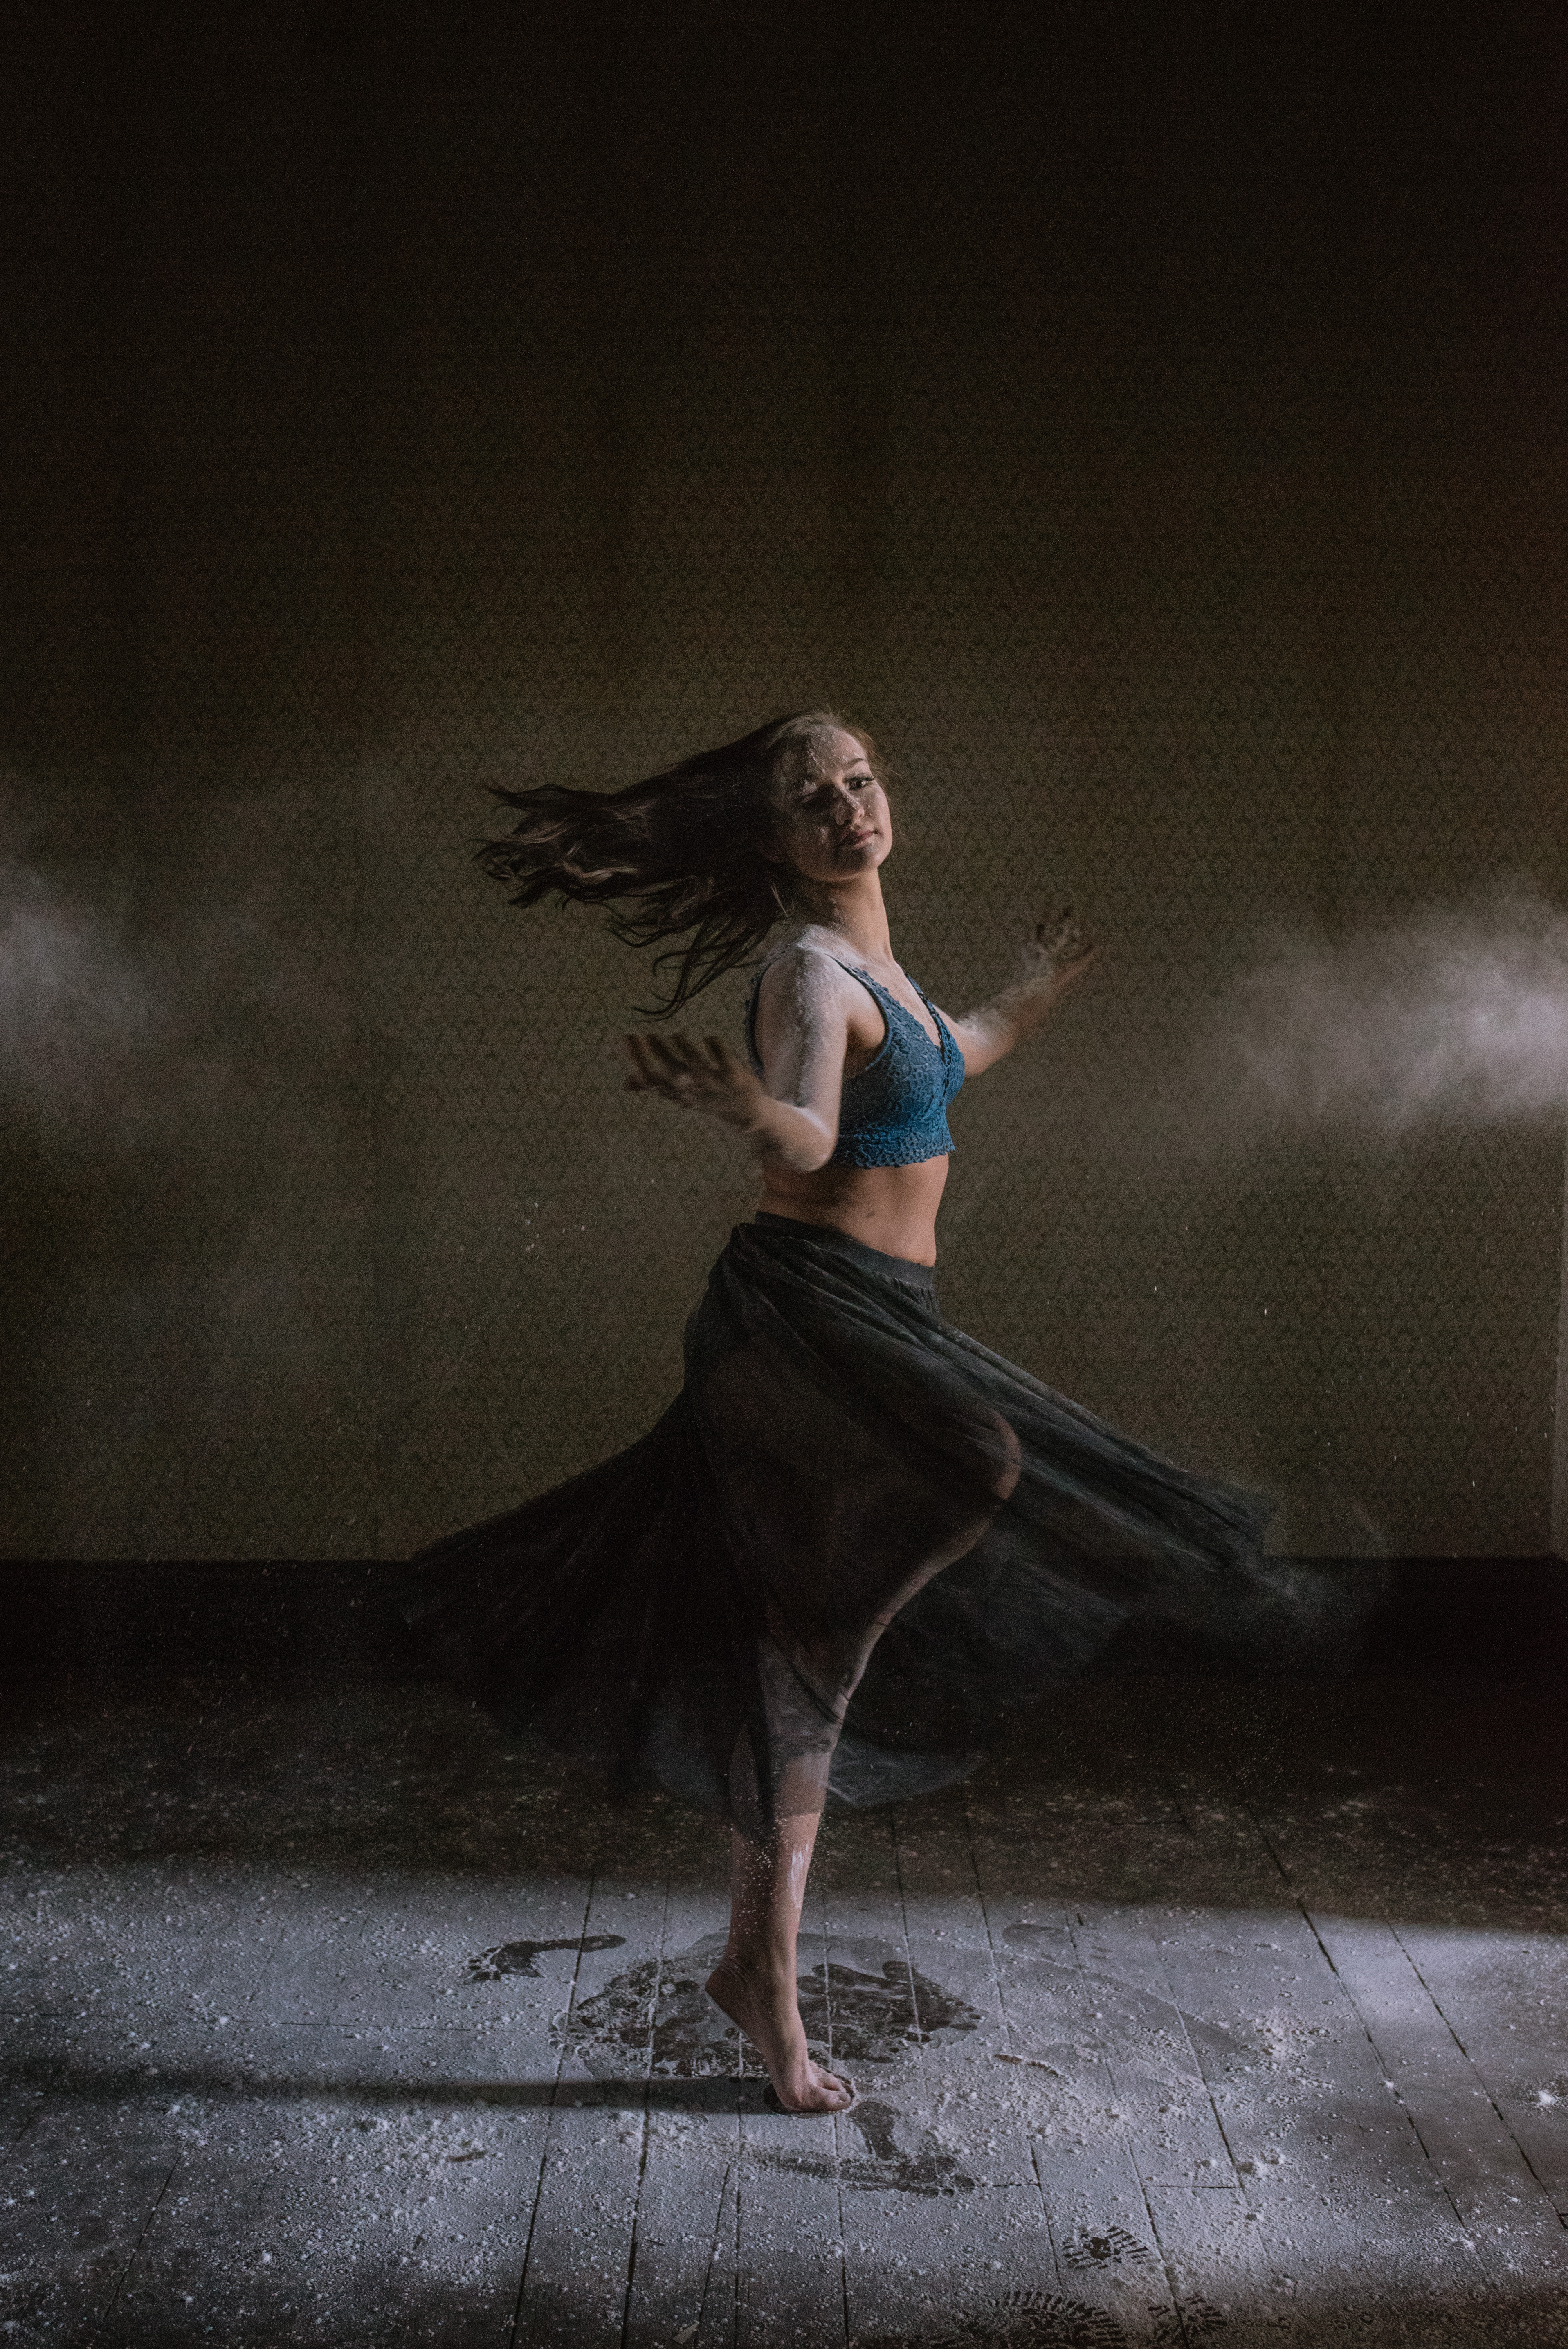 pittsburgh dance photography session